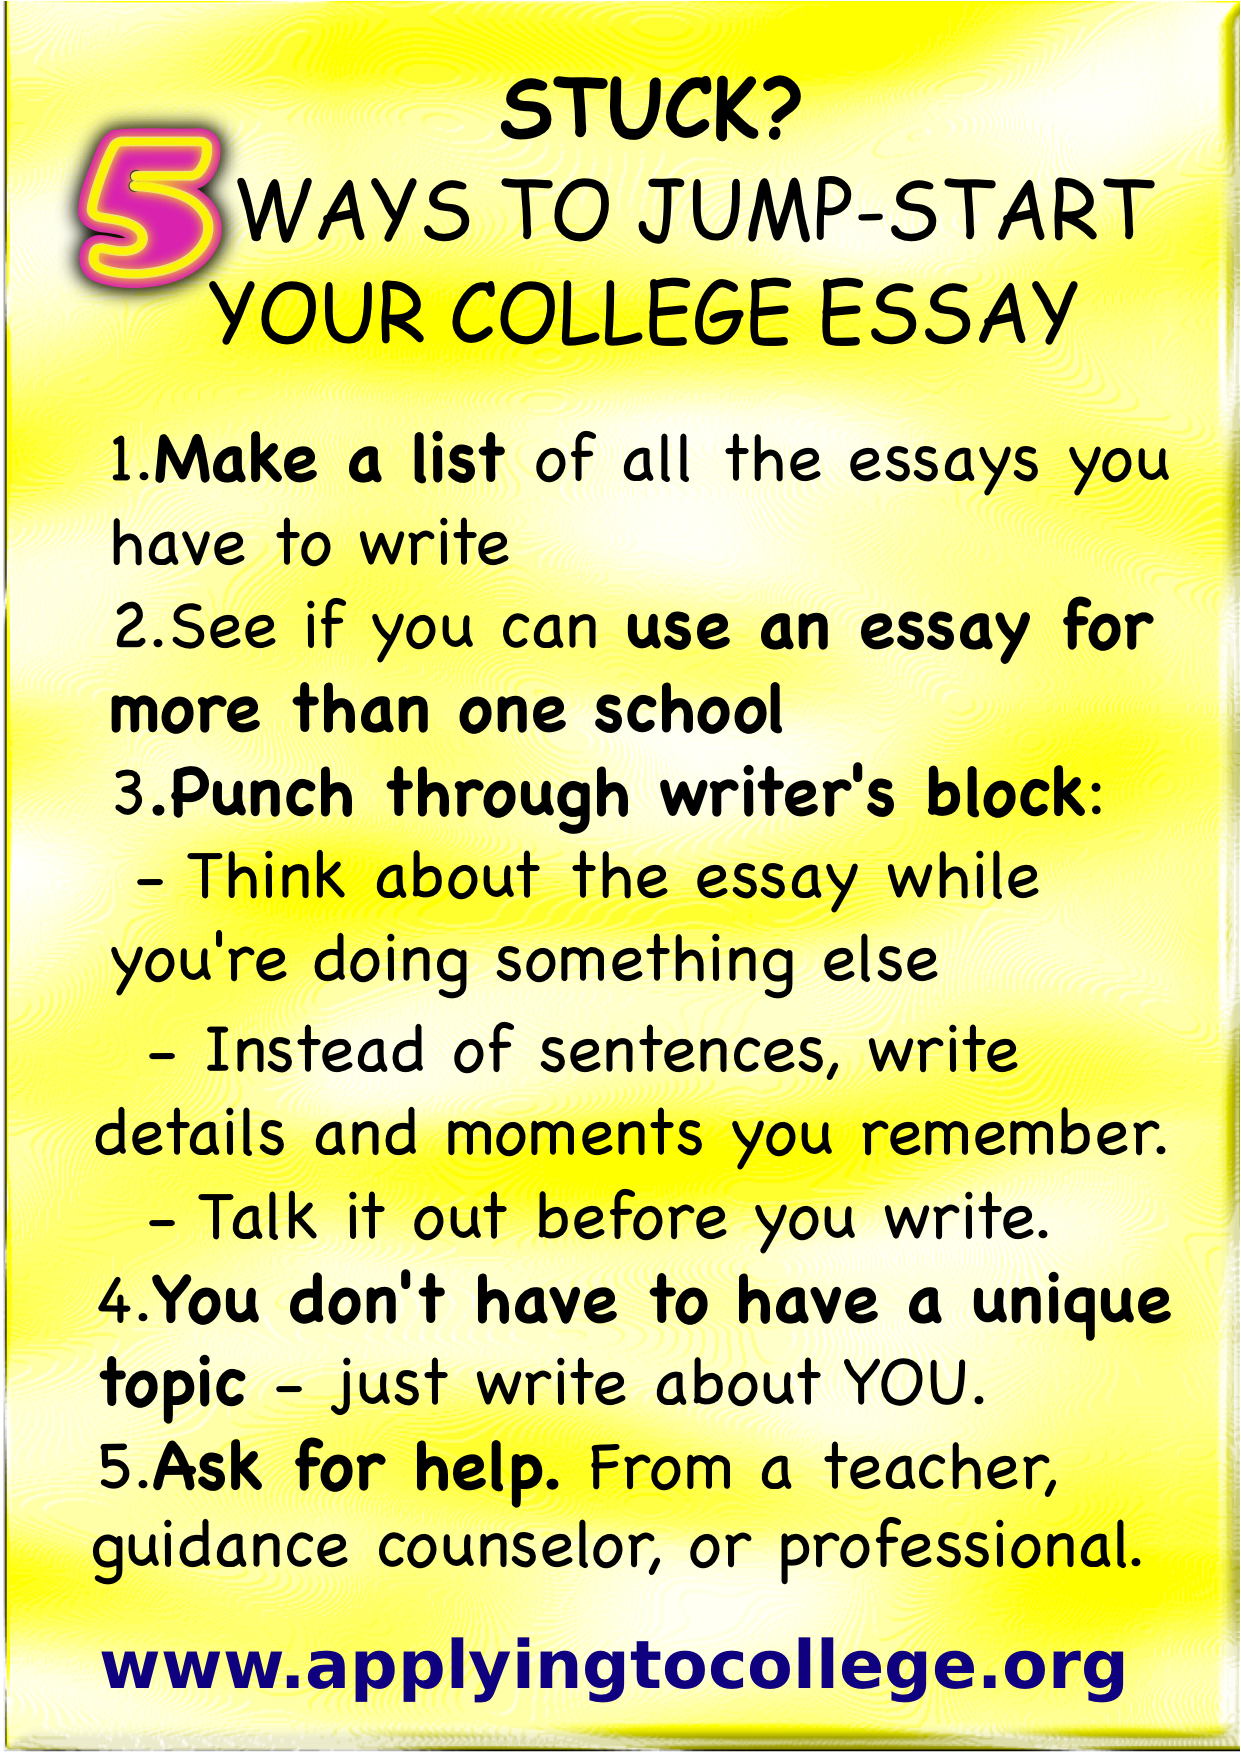 Essay Examples That Will Get You That Scholarship